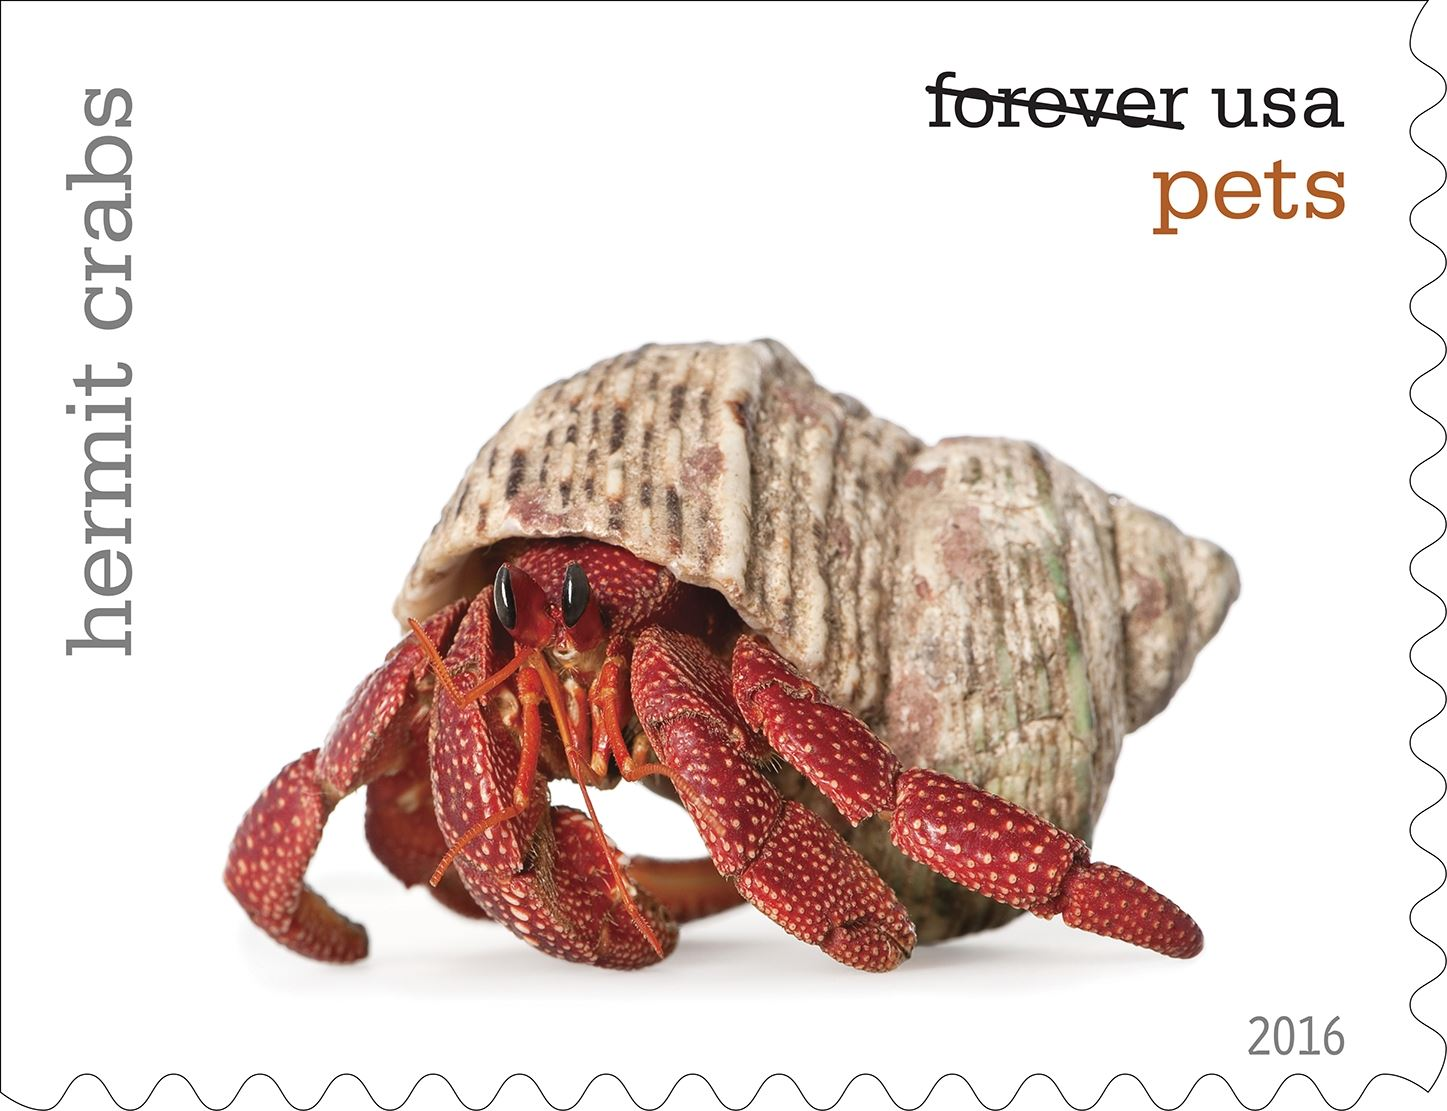 10-0_USPS16STA004k-2 Hermit crabs will be among the pets celebrated in an upcoming set of Forever stamps issued by the U.S. Postal Service.